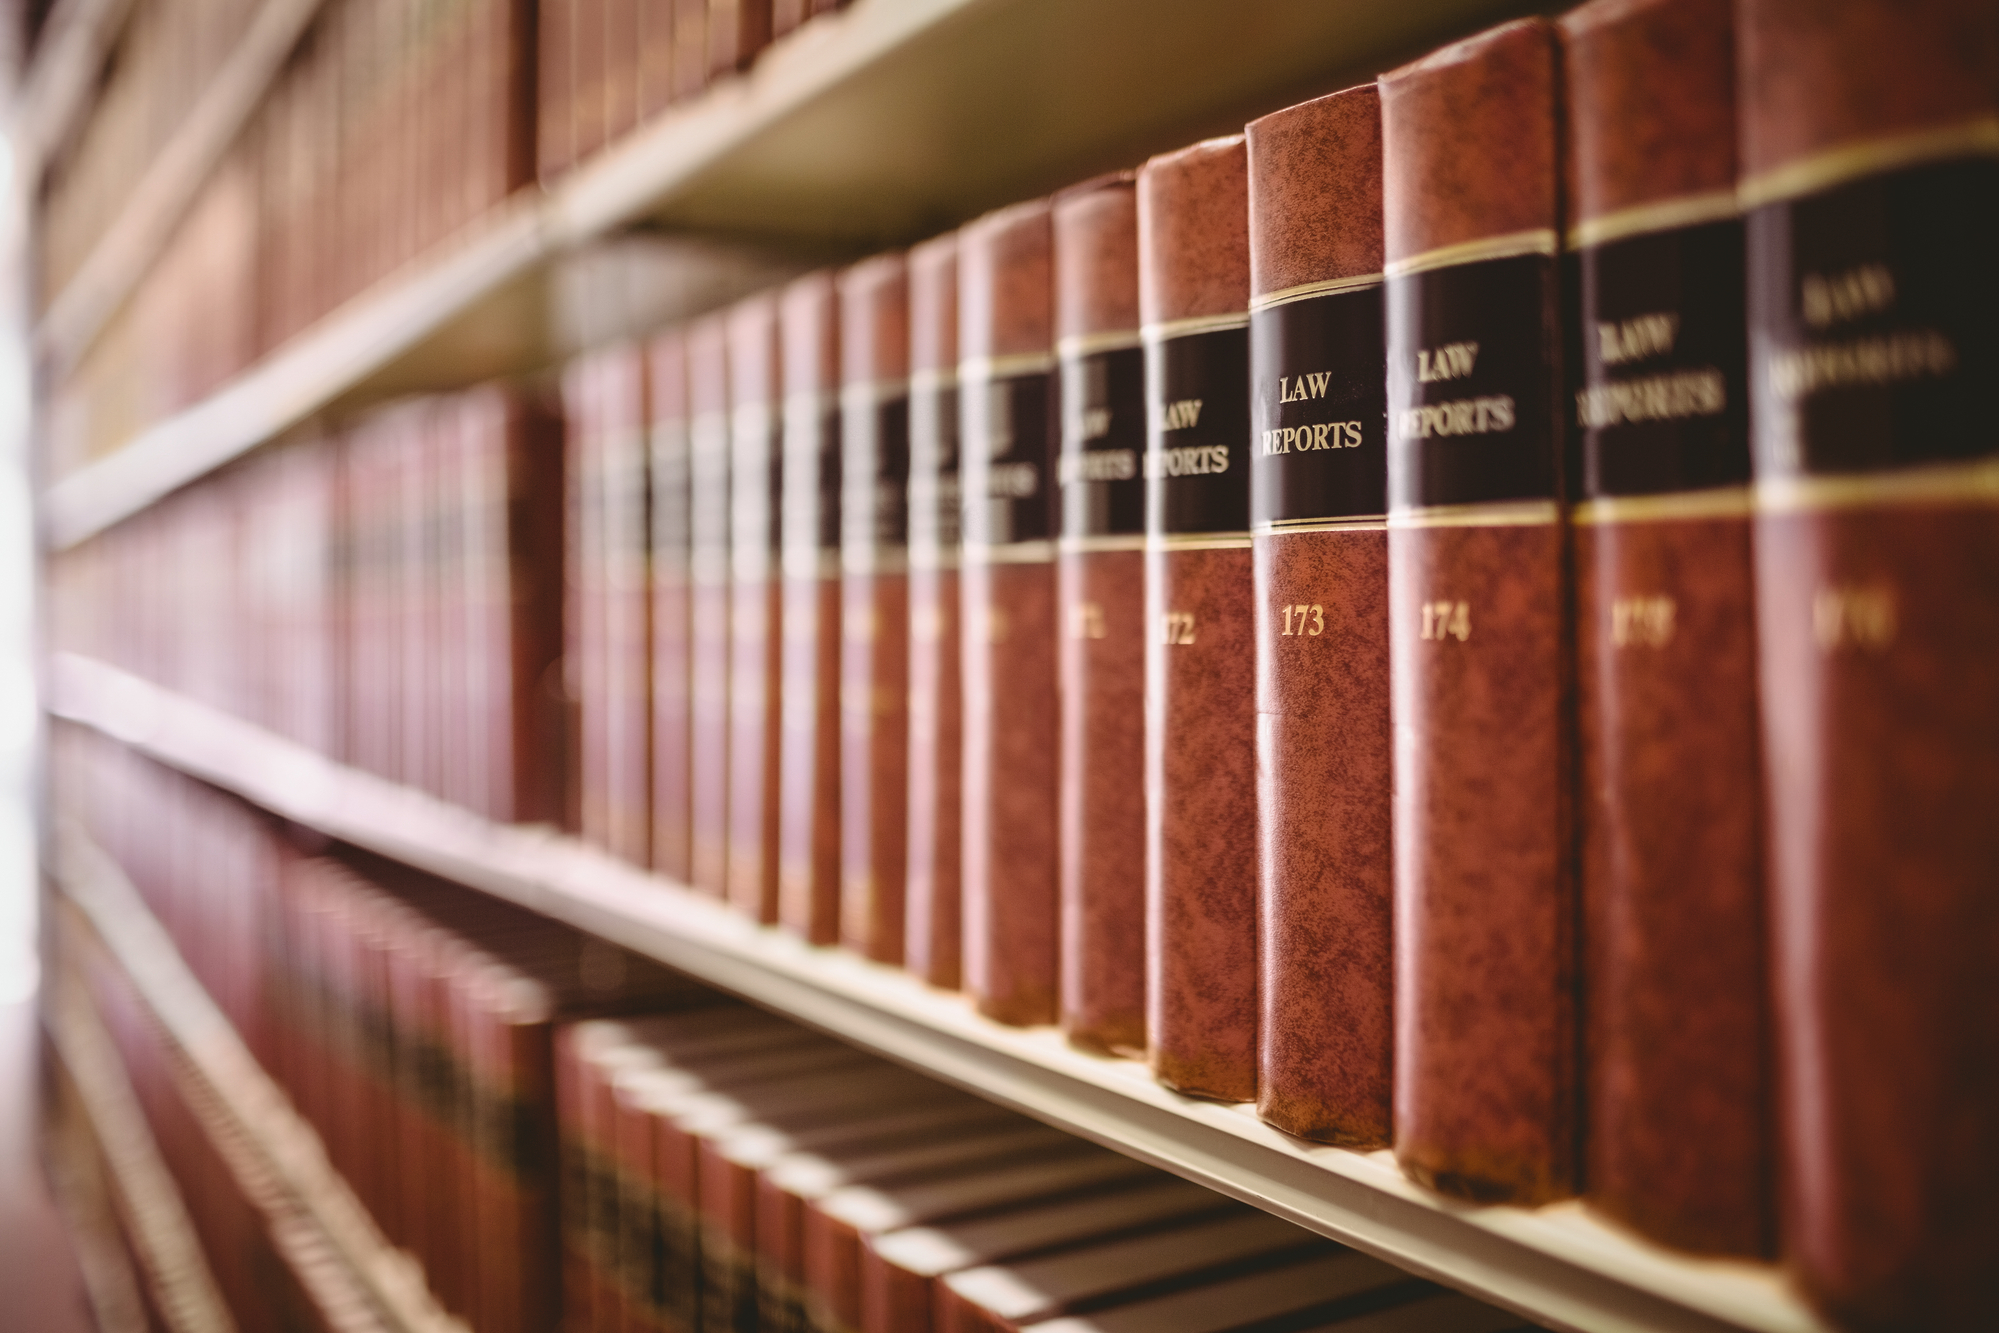 Close up of a lot of law reports